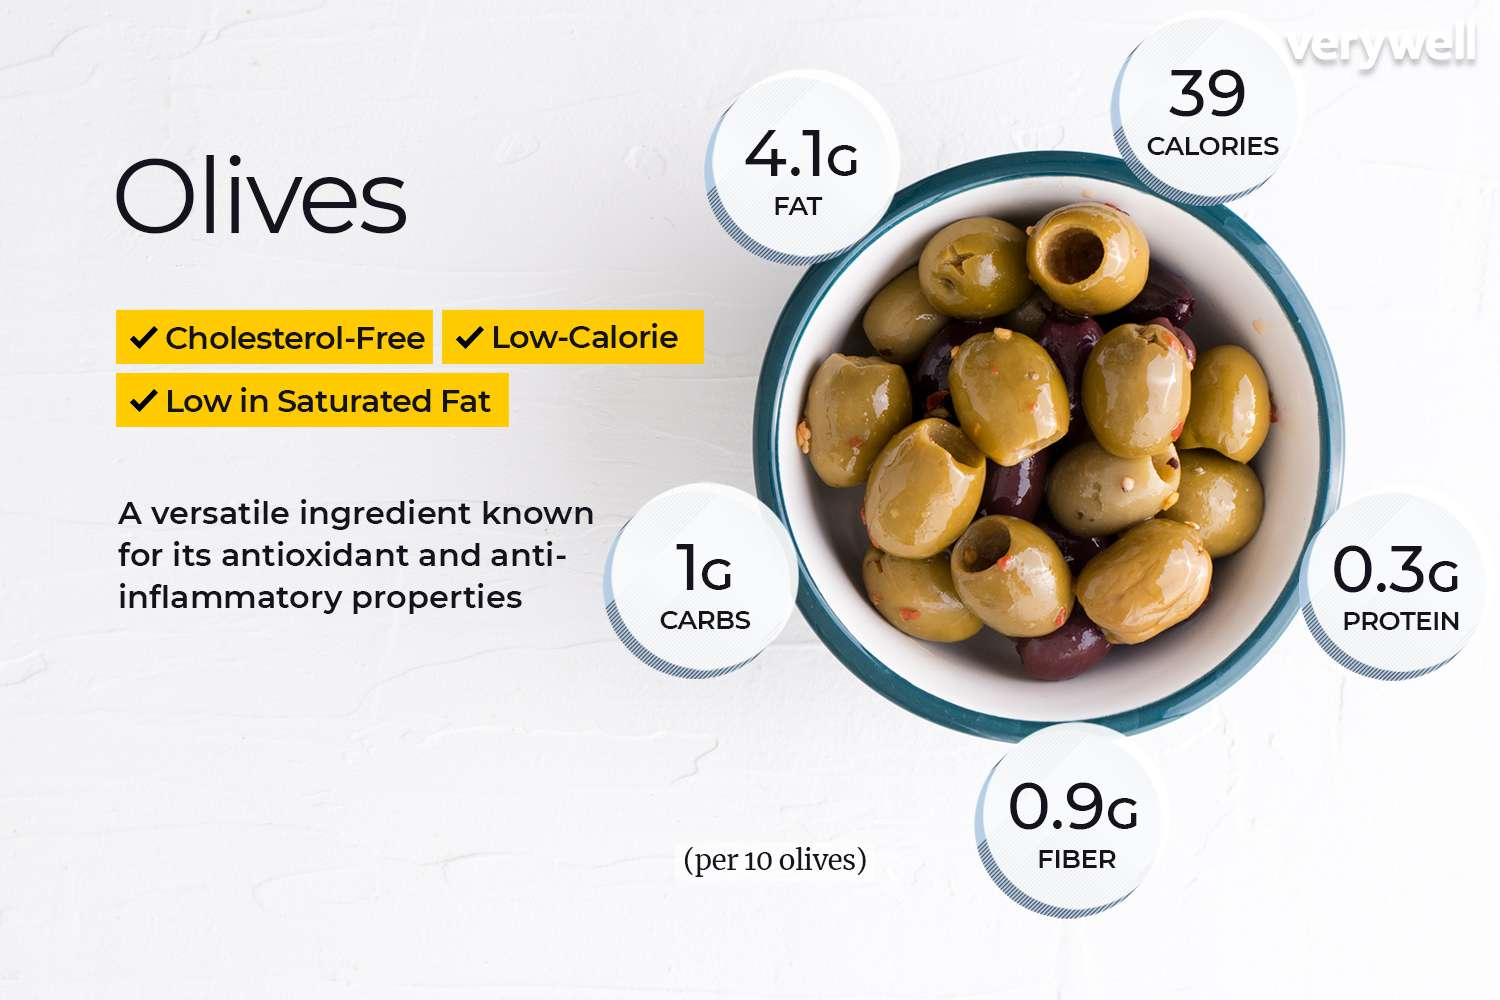 Are Olives Allowed on a Low-Carb Diet?